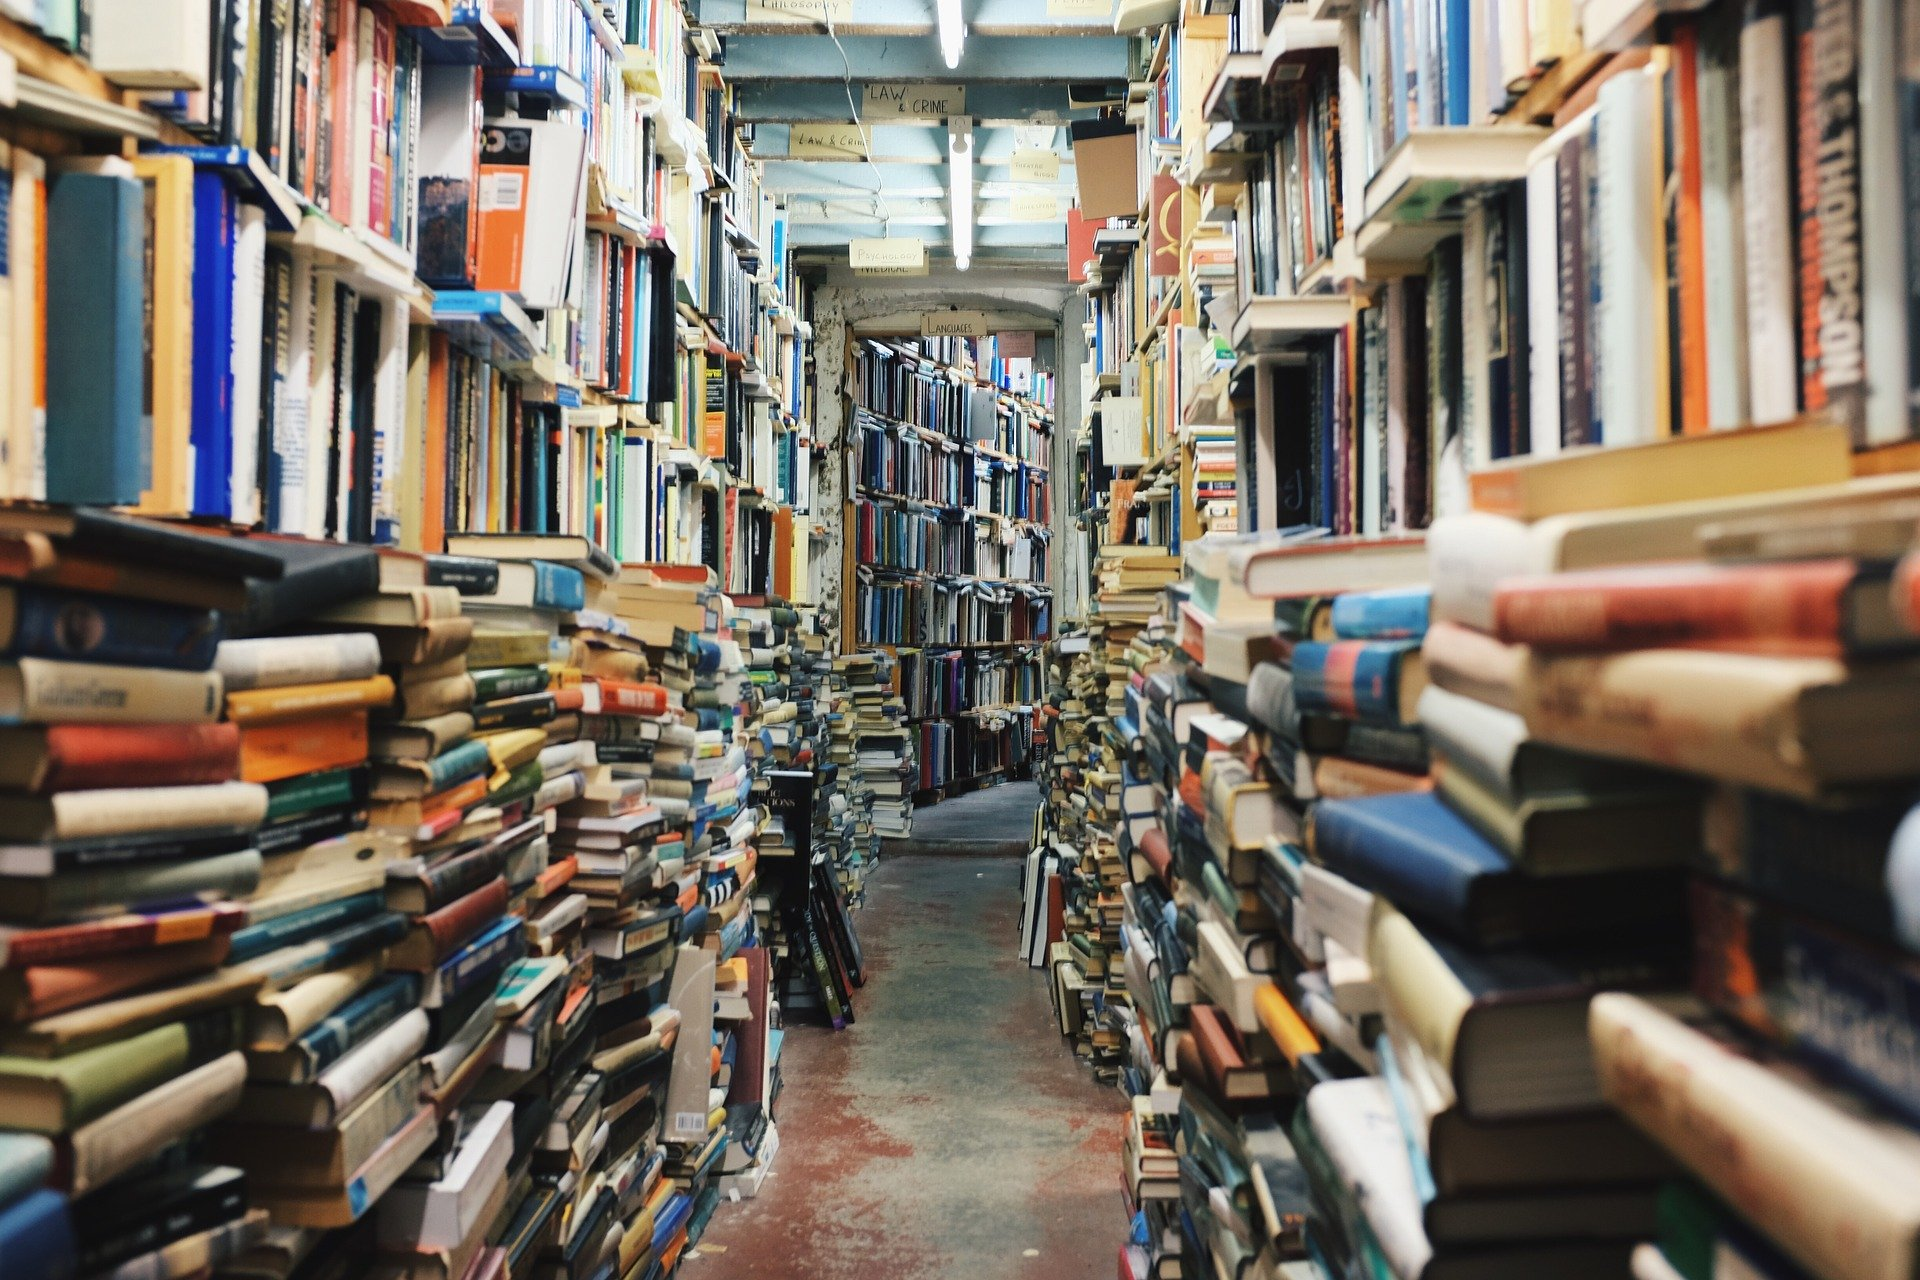 DIVE! into a sea of books